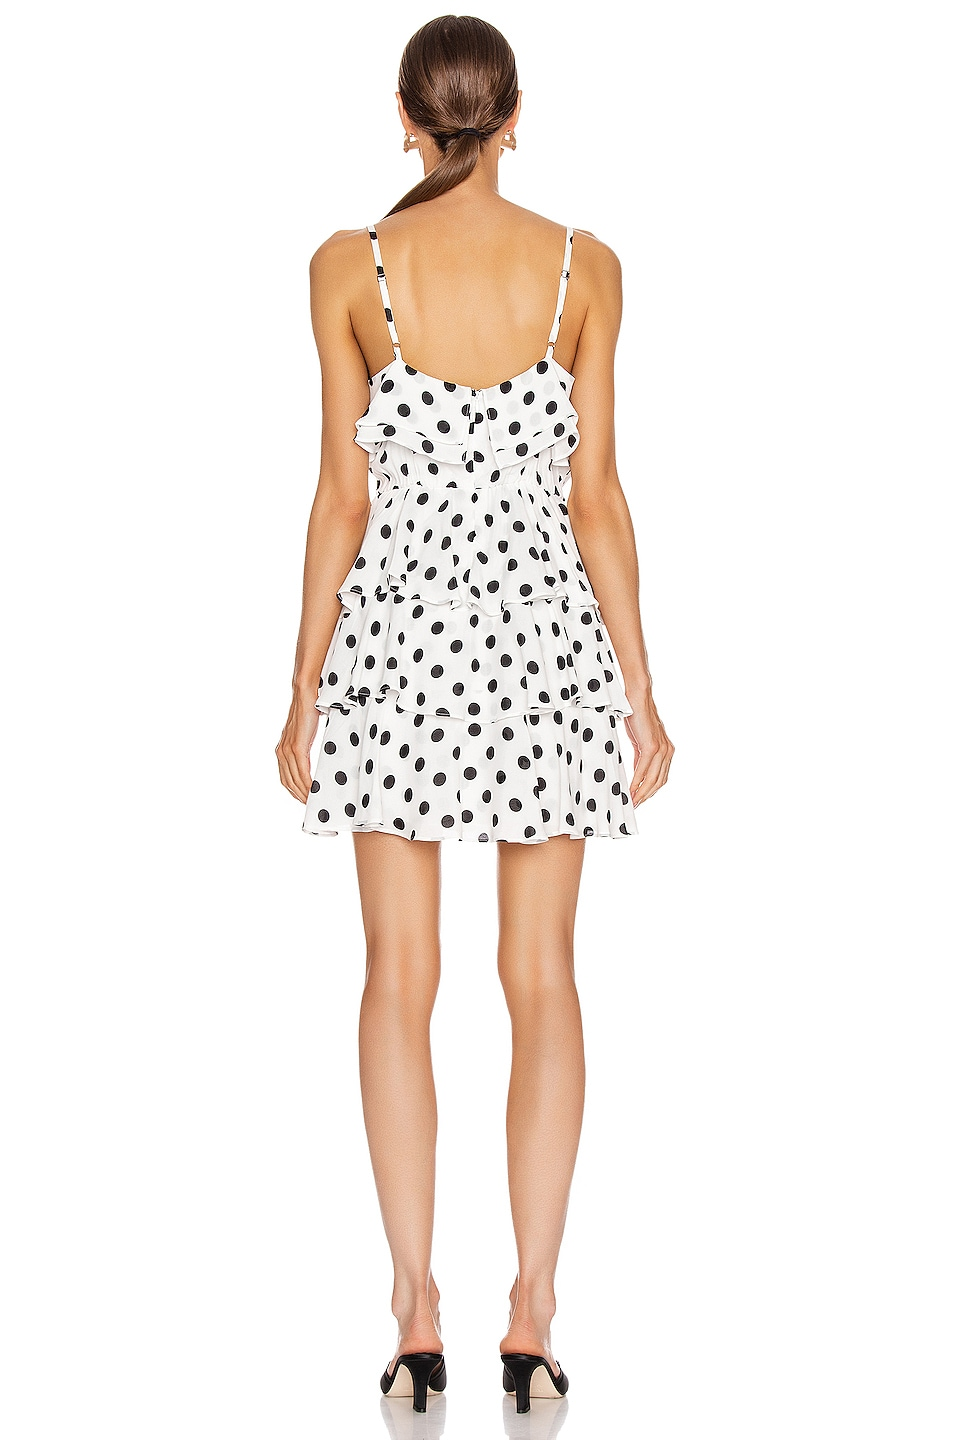 Image 3 of ICONS Objects of Devotion Ruffle Stacked Mini Dress in White & Black Polka Dot